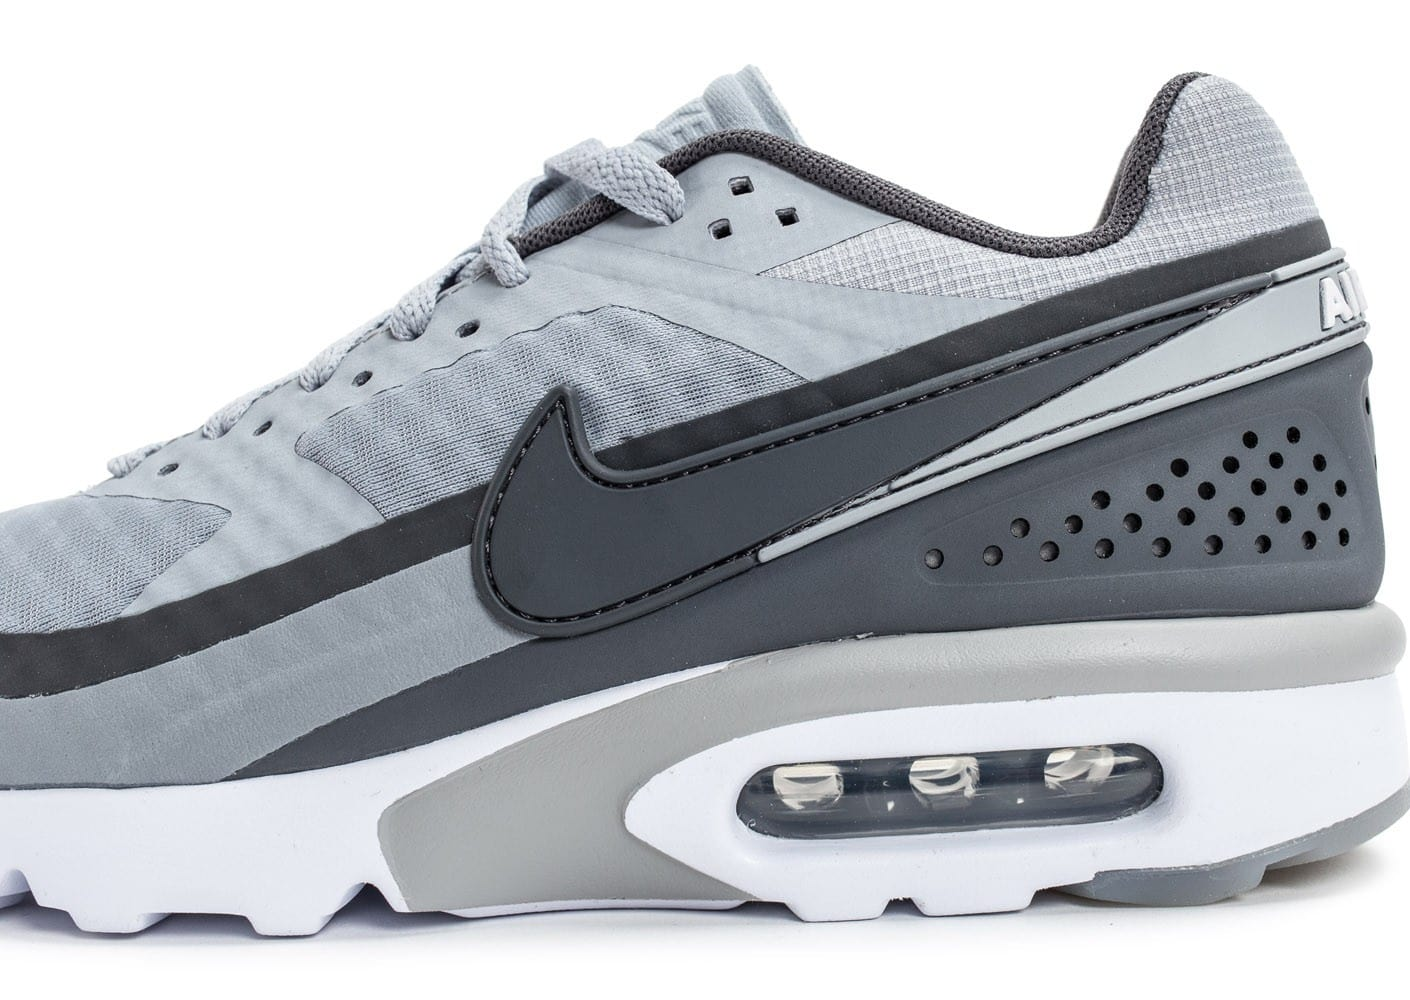 check out c0cbb 41e84 chaussures nike air max bw ultra grise vue details